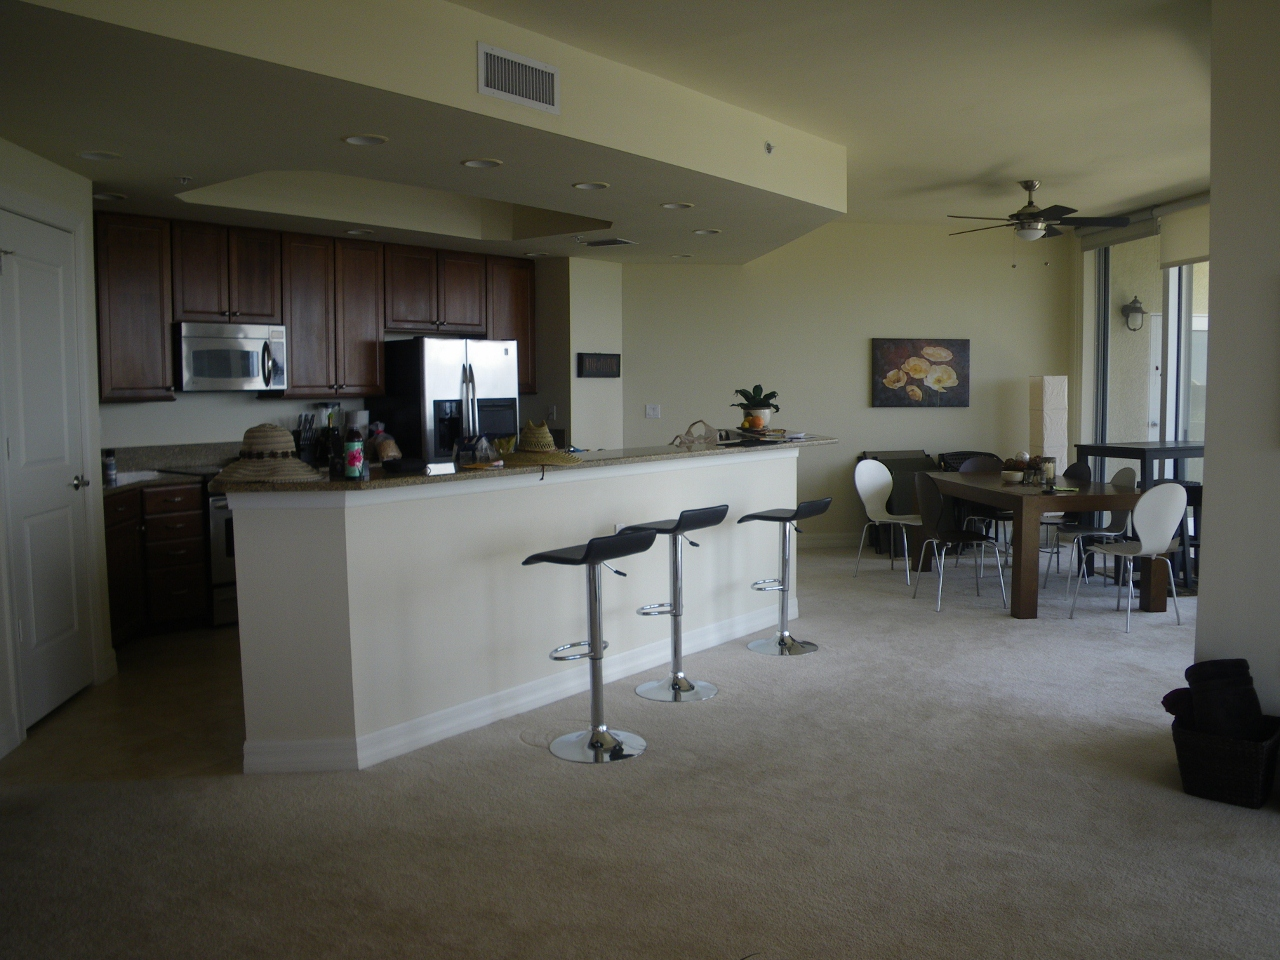 3-Northstar-Yachtclub-Condo-Kitchen-Dining